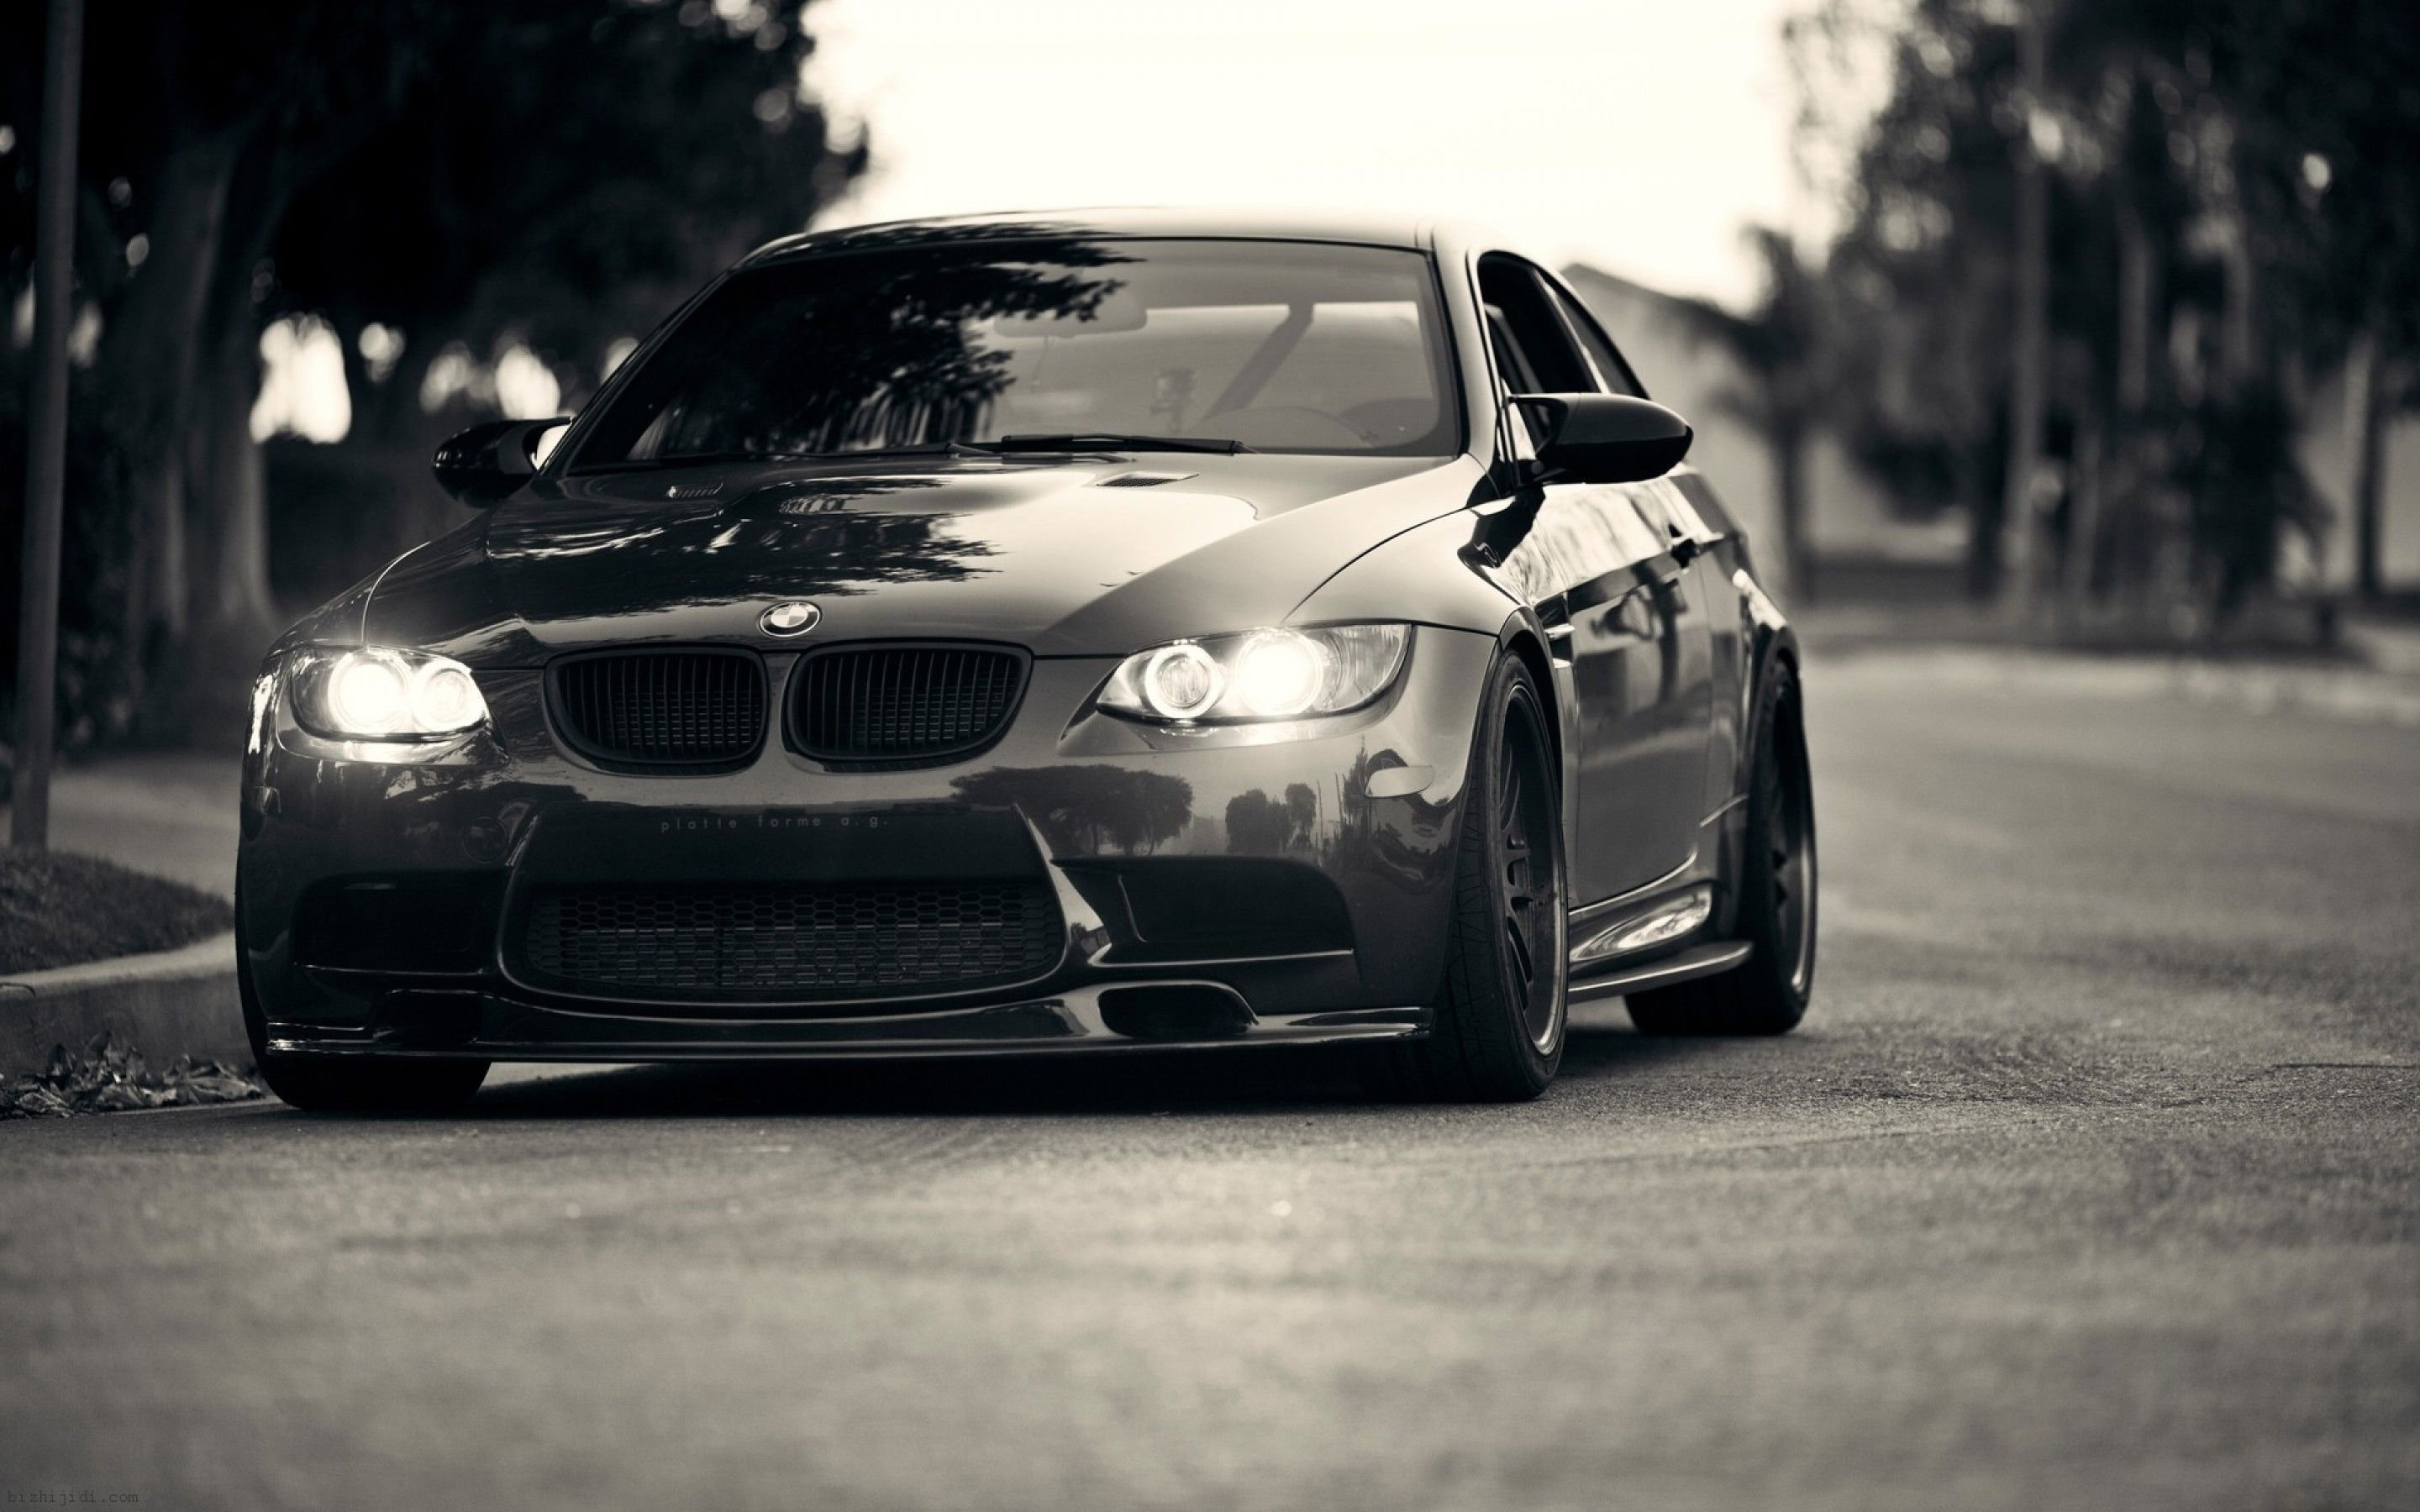 Latest Image For Bmw Hd Wallpaper Background Full Quality 2080 X Free Download